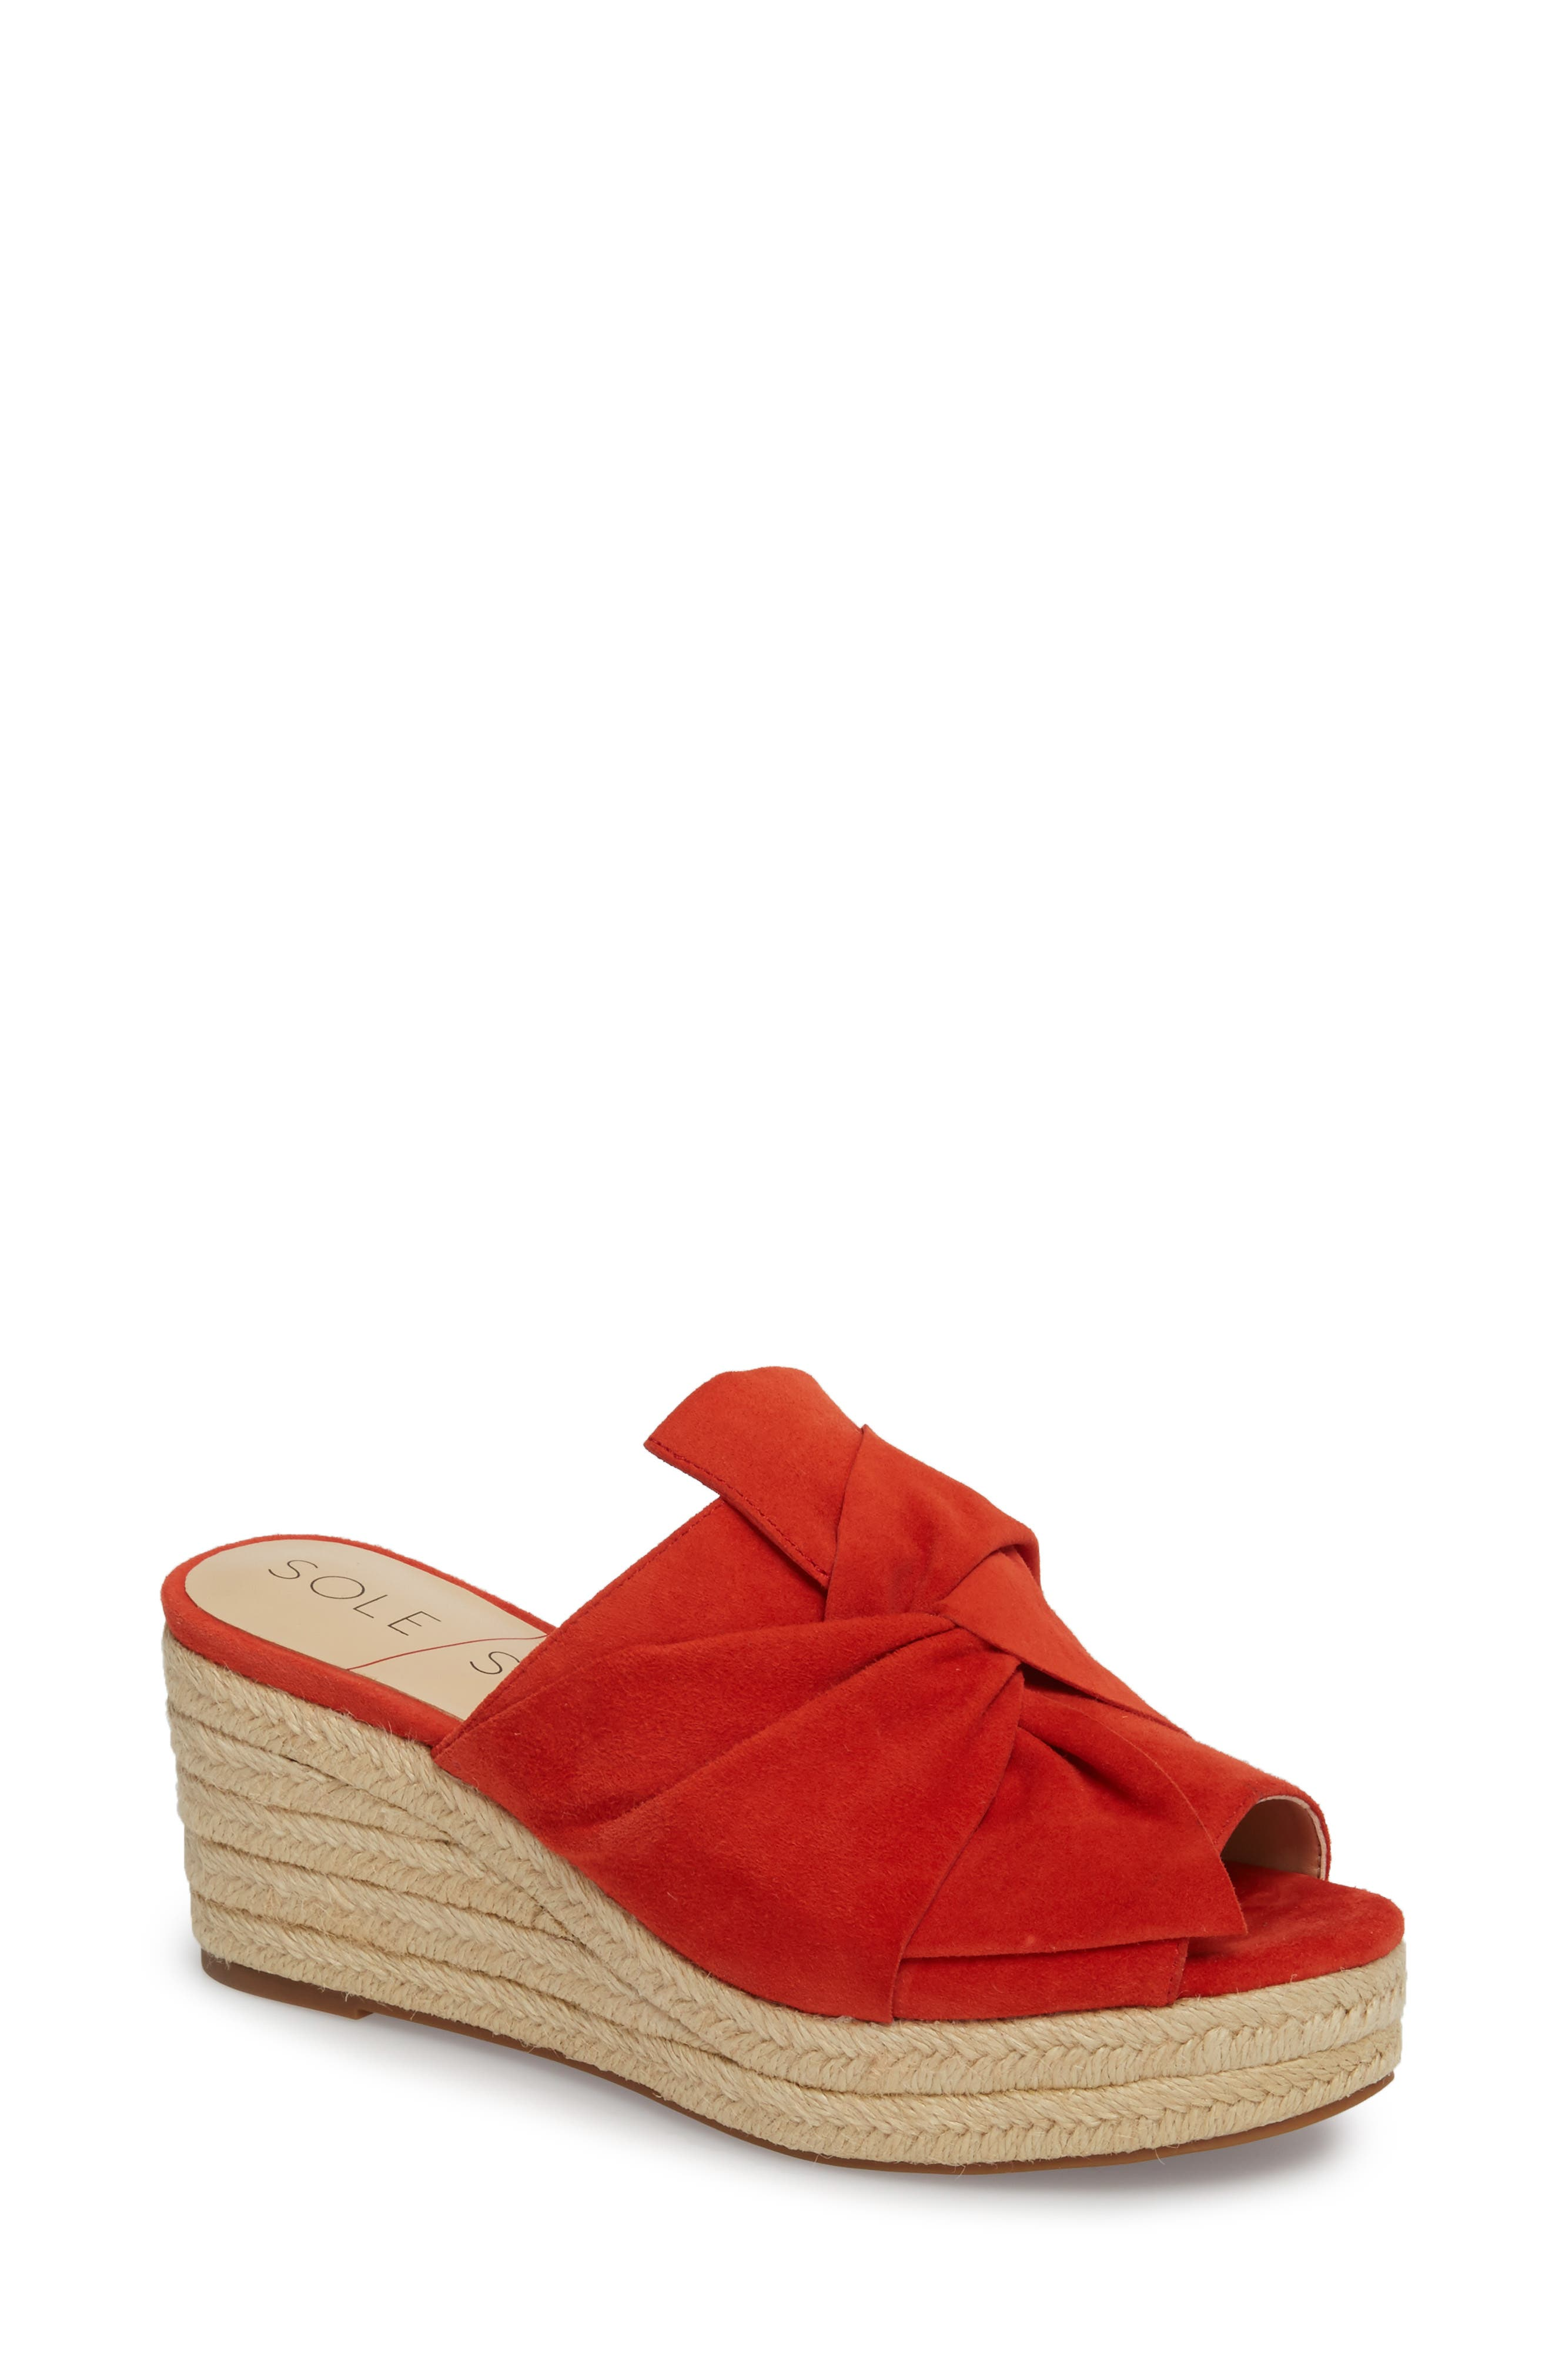 Carima Espadrille Wedge,                         Main,                         color, Bright Coral Suede